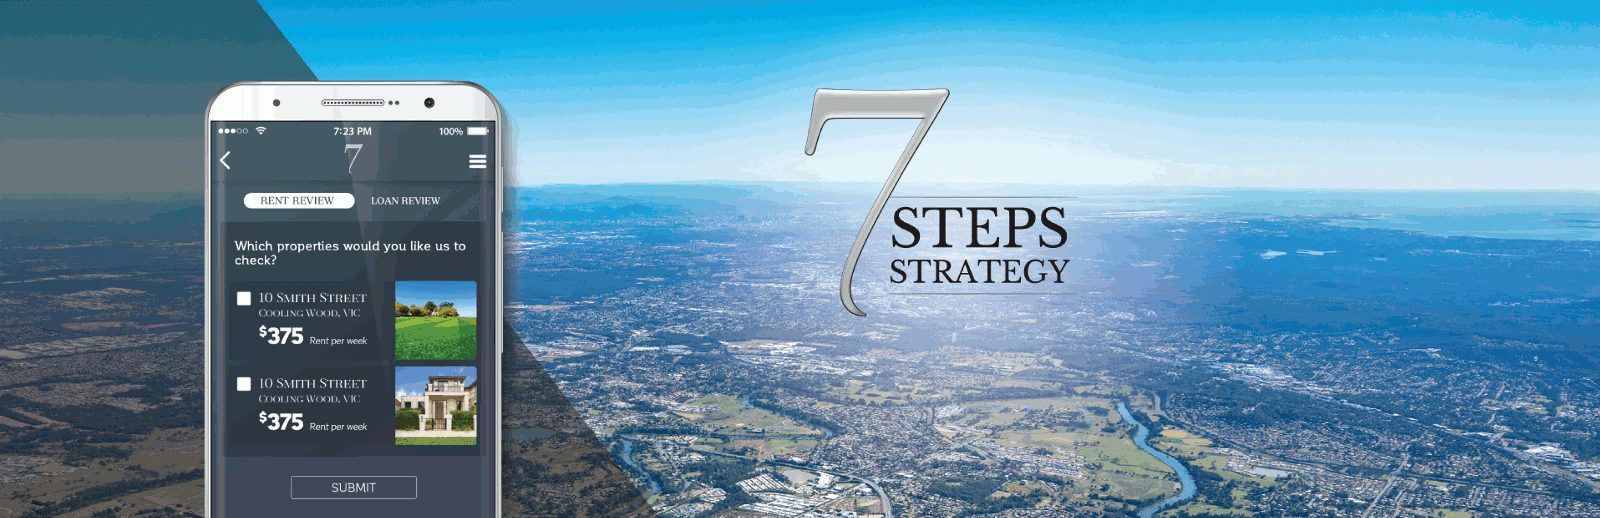 7 Steps Strategy application